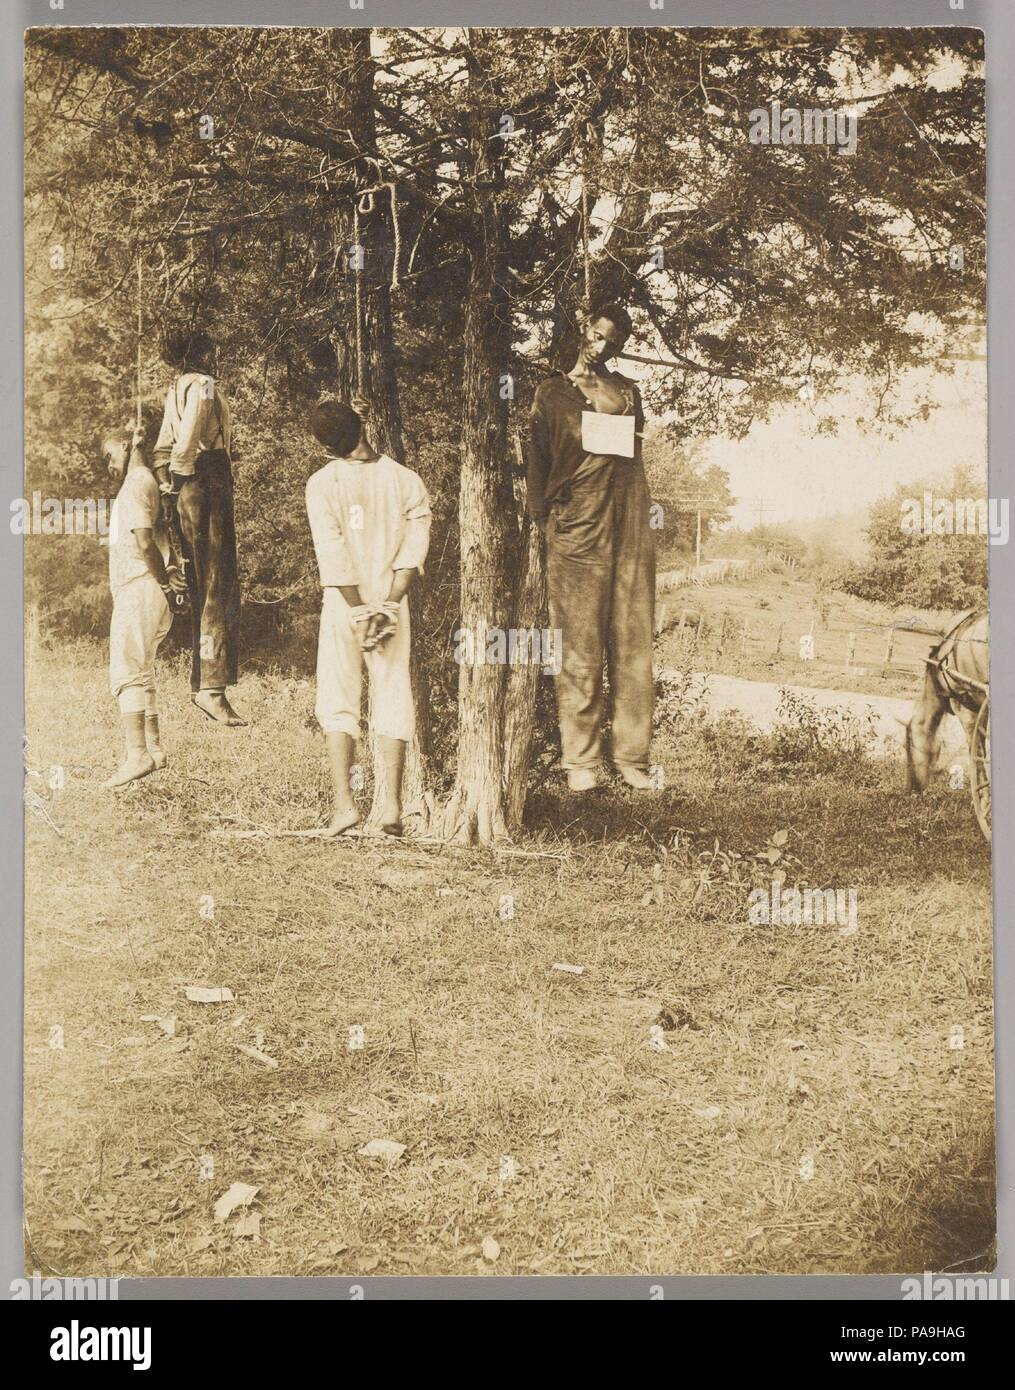 [Lynching, Russellville, Kentucky]. Artist: Minor B. Wade (American, 1874-1932). Dimensions: Image: 11.8 x 9.1 cm (4 5/8 x 3 9/16 in.). Date: 1908.  From the first year of Reconstruction to the early 1940s, lynching was the primary means of maintaining white supremacy in the American South. Considered by the federal government a normal condition of post-Civil War race relations, lynching was used not only as a specific act of summary 'justice' but also as a symbol to further intimidate and degrade blacks. The magnitude of recorded mob violence between 1880 and 1940 almost defies description, i - Stock Image